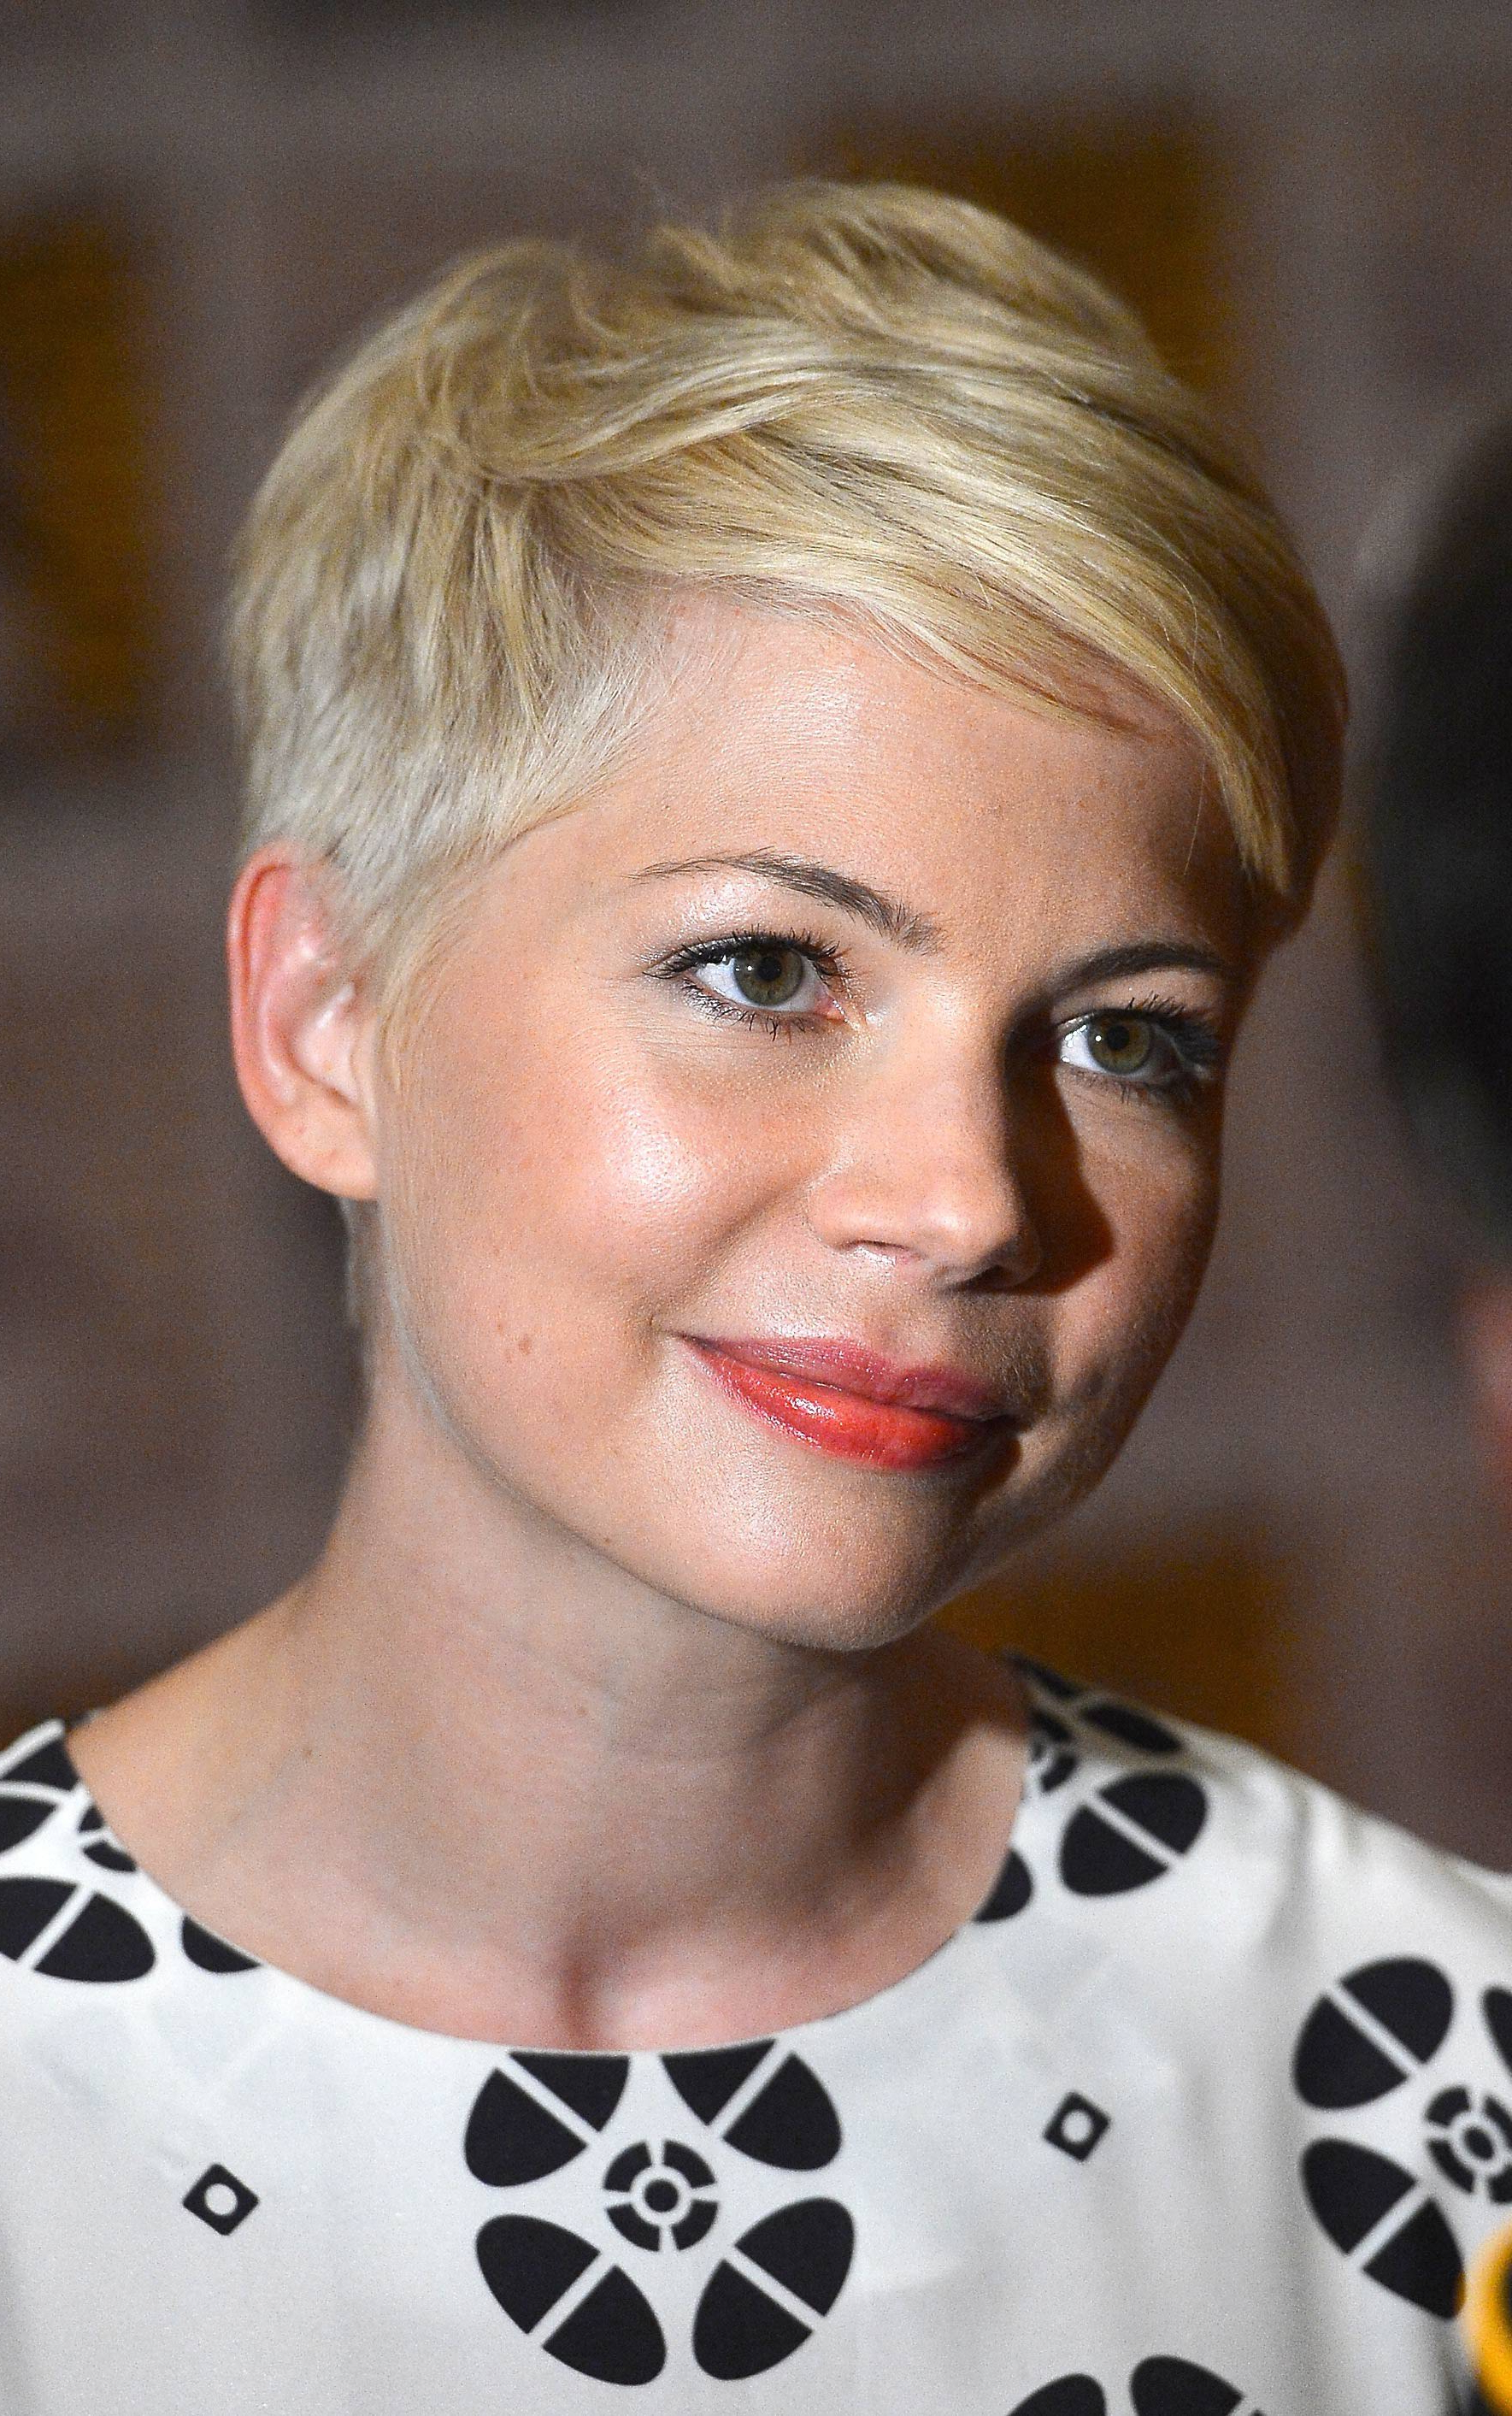 20 Best Short Haircuts For Women – The Xerxes With Short Haircuts For Square Jaws (View 15 of 25)